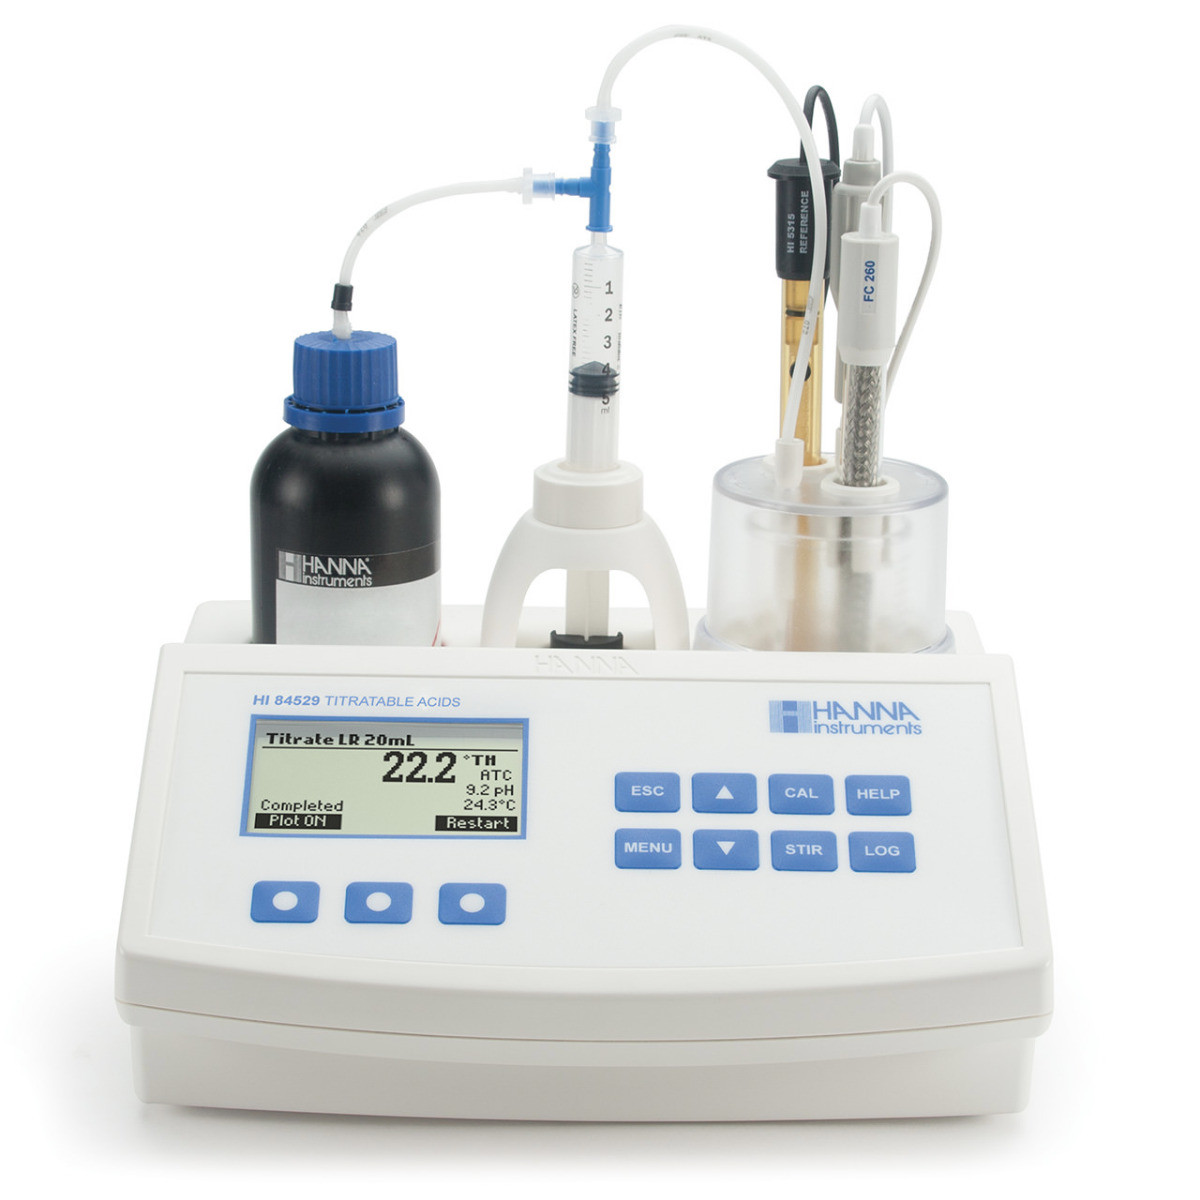 Mini Titrator for Measuring Titratable Acidity in Dairy Products - HI84529